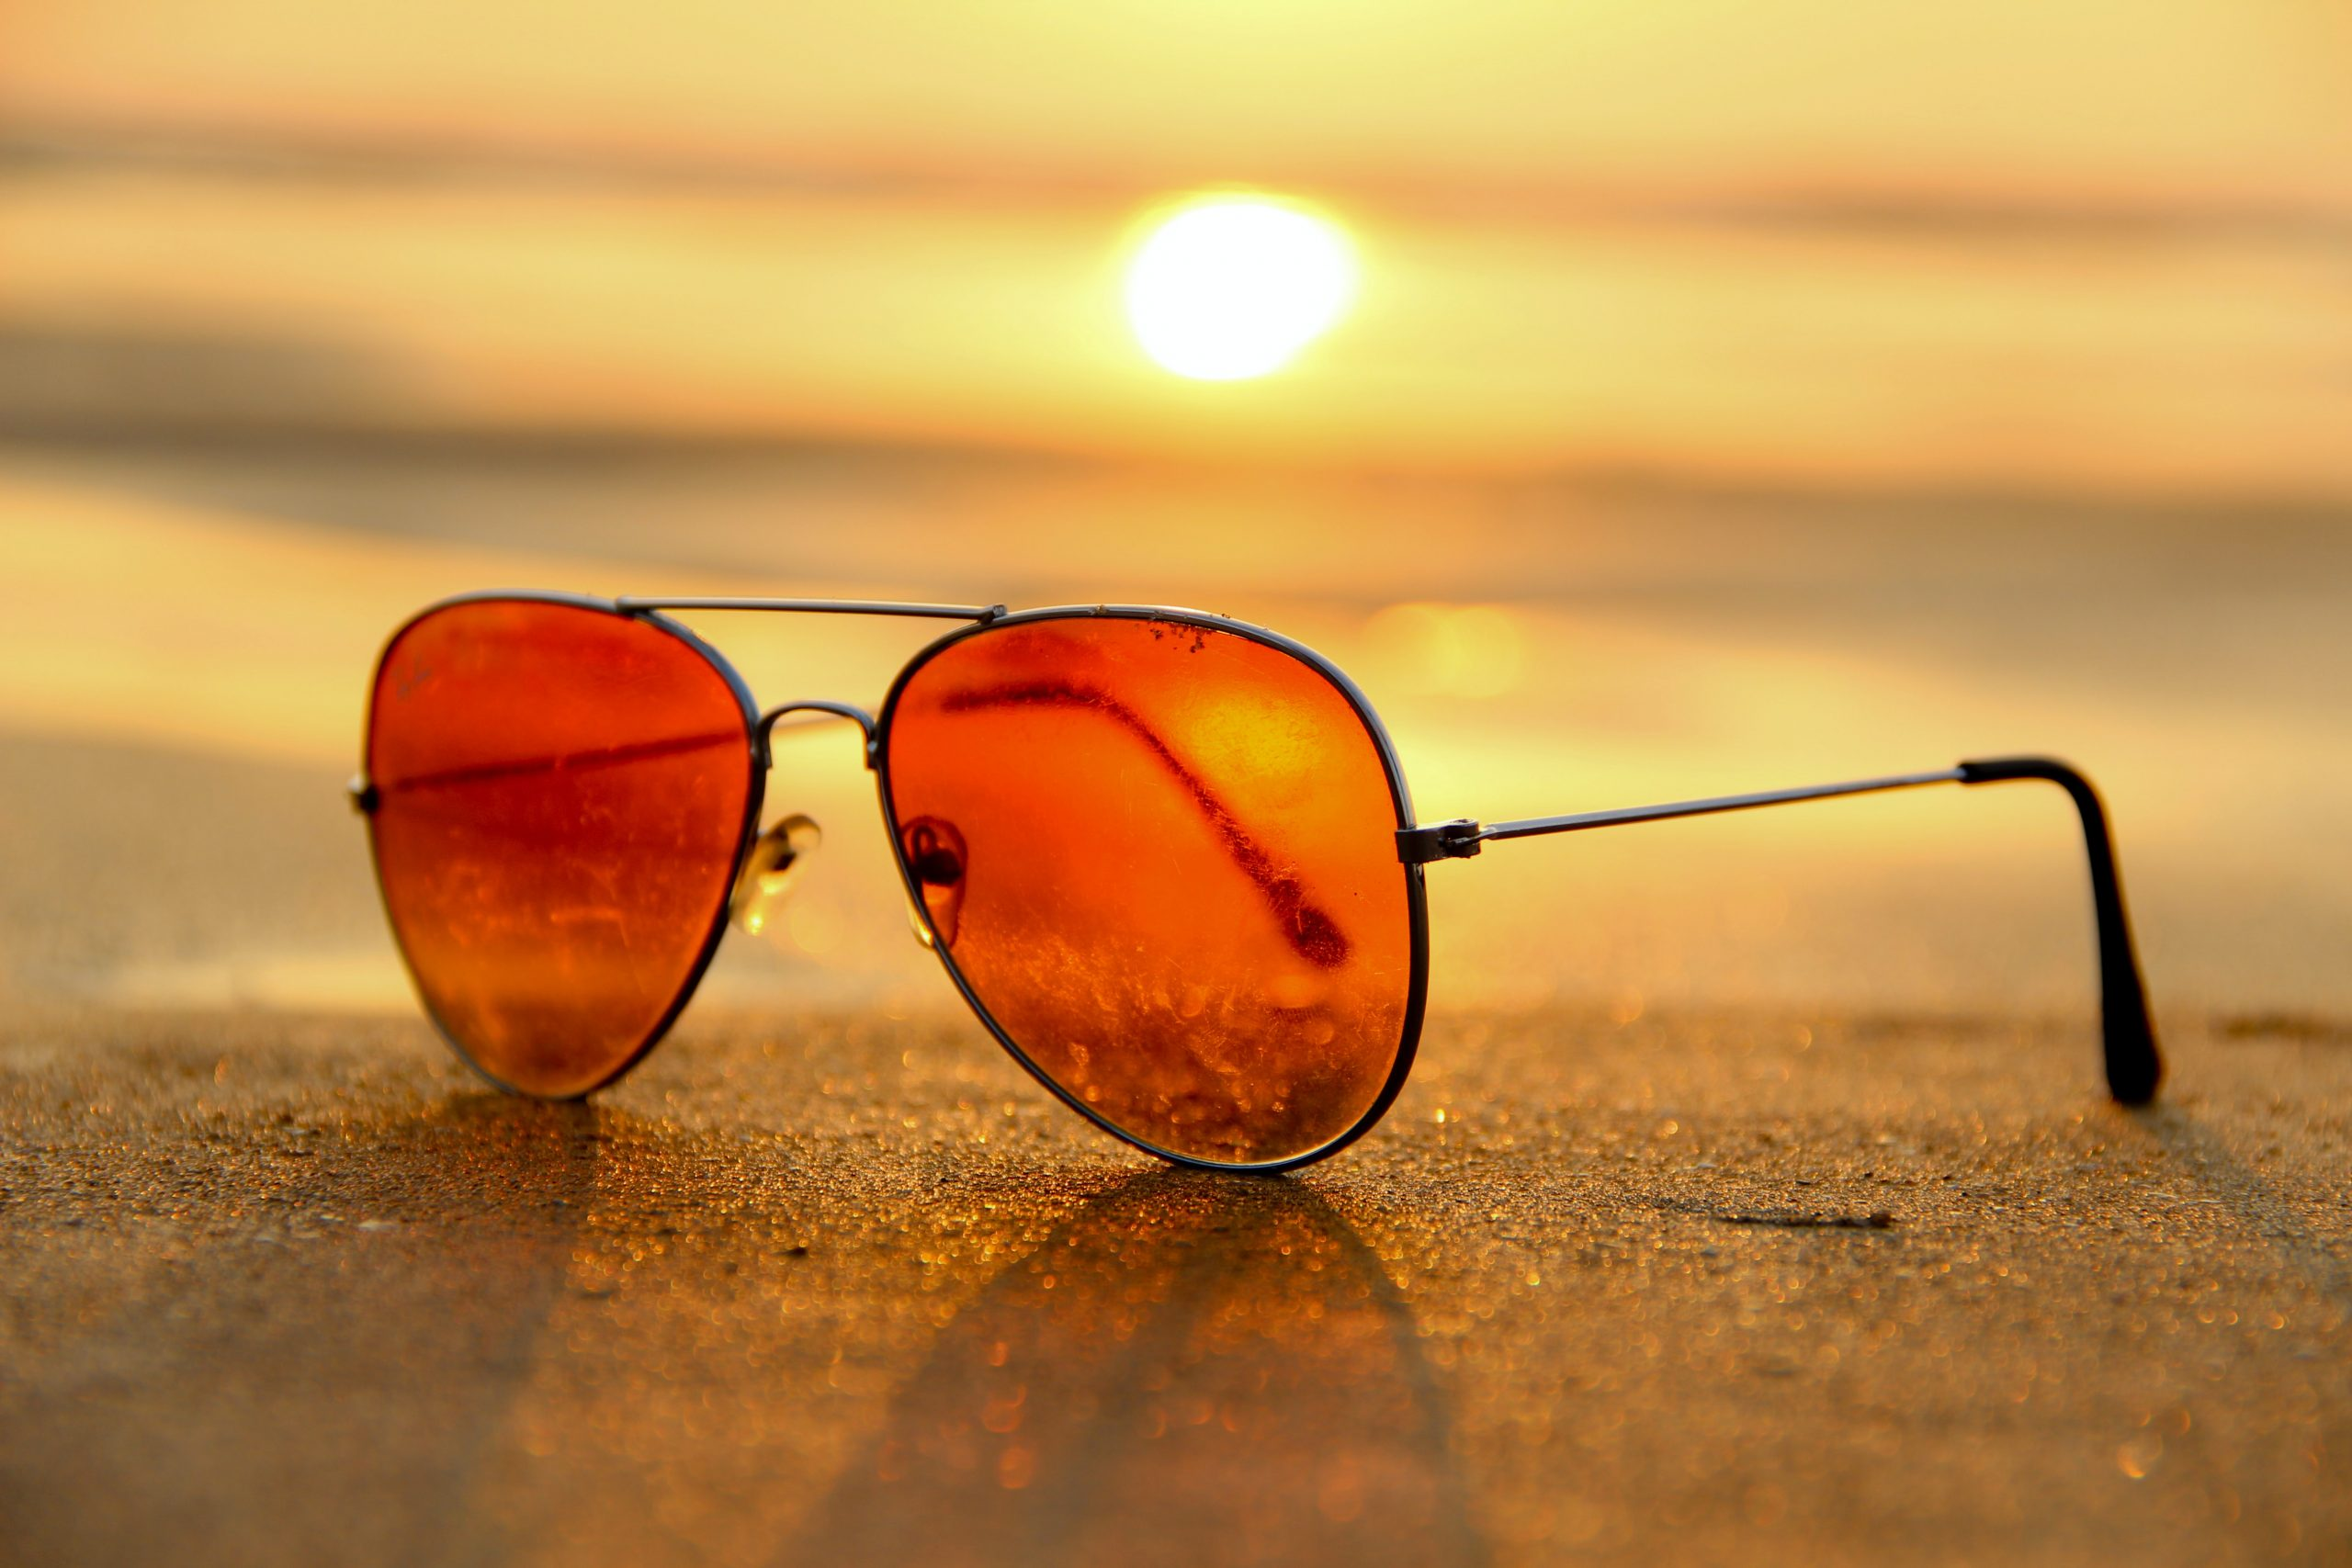 social media stats during Coronavirus graph on a laptop sunglasses-sunset-summer-sand